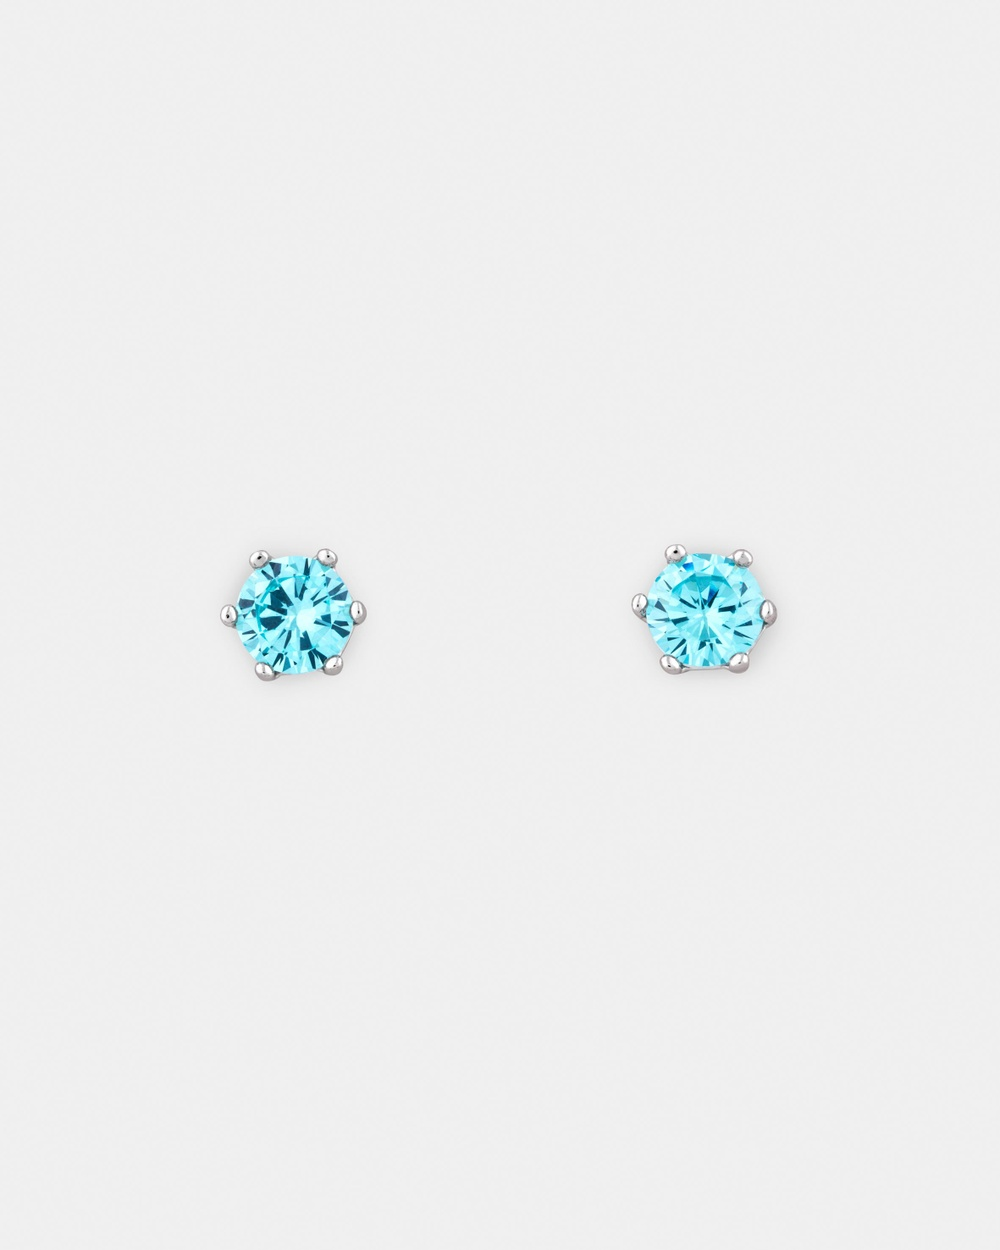 Michael Hill Stud Earrings with Aqua Cubic Zirconia in Sterling Silver Jewellery Sterling Silver